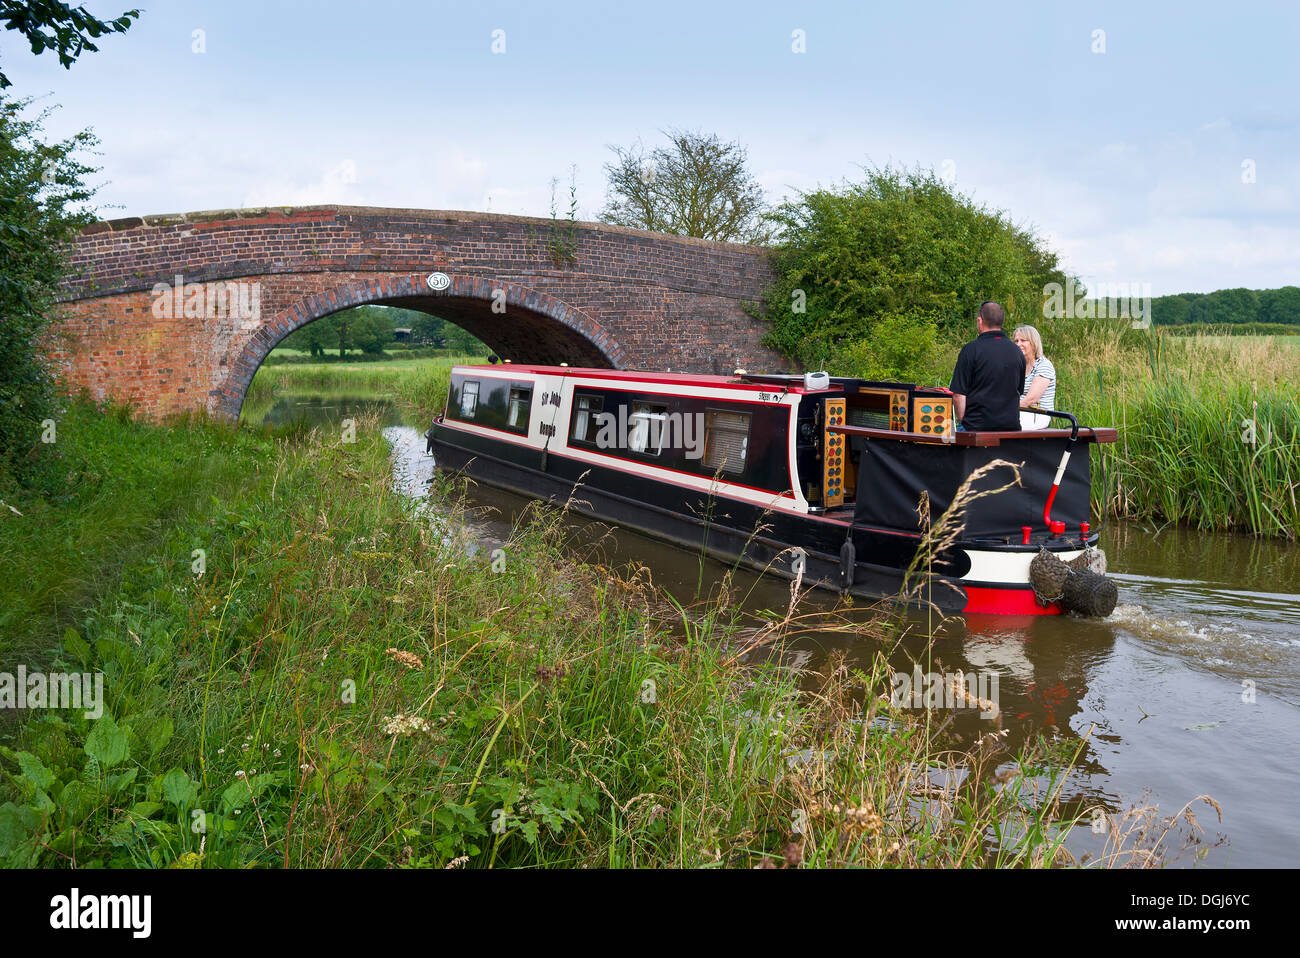 A couple enjoying a fine day on a narrowboat on the Ashby Canal. - Stock Image